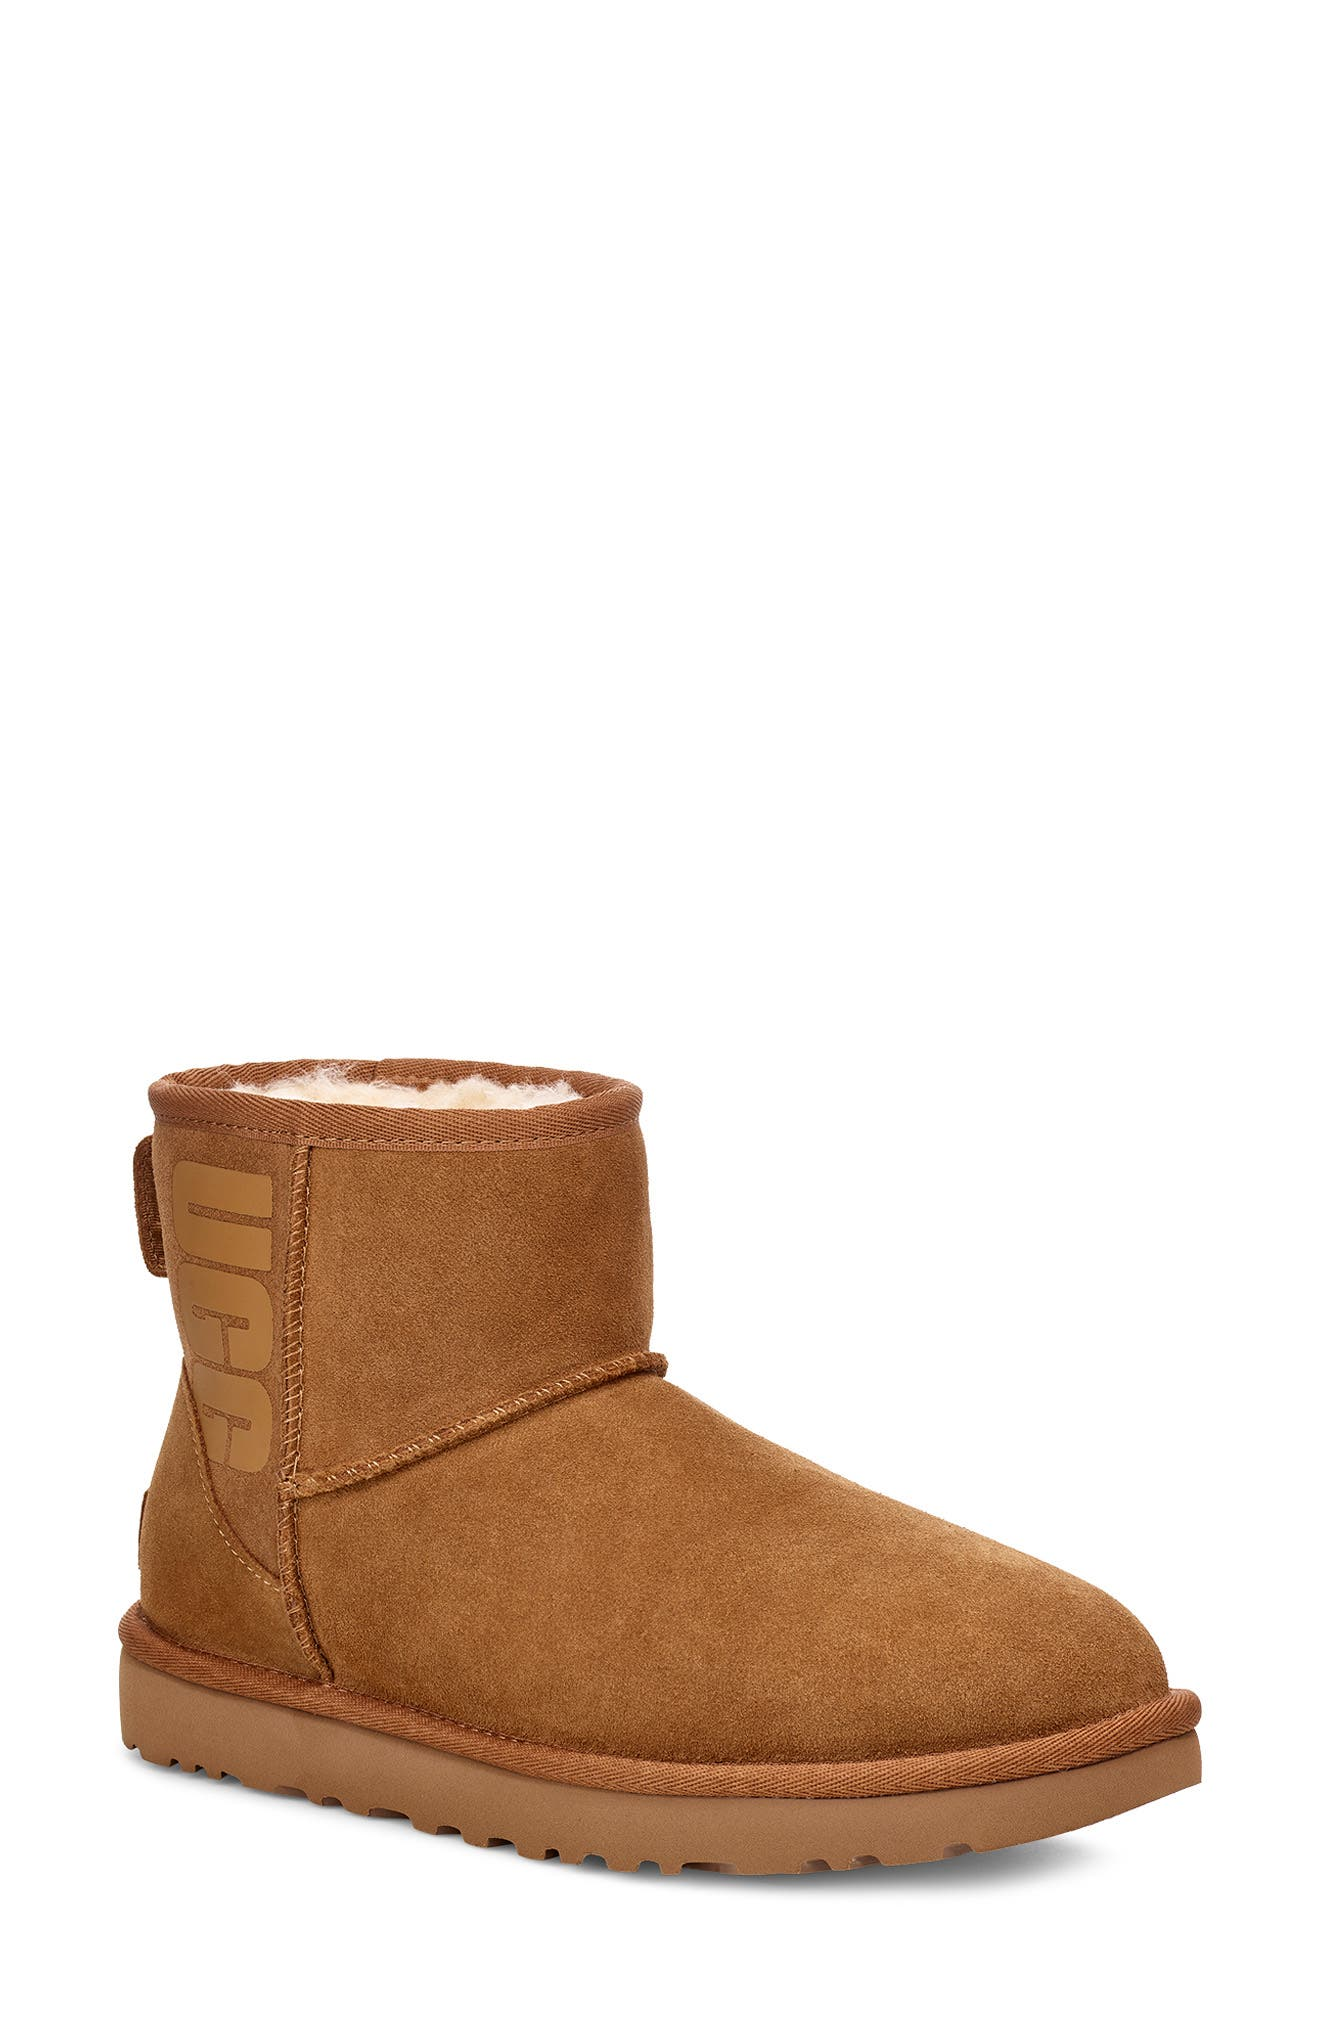 Ugg CLASSIC MINI UGG RUBBER LOGO WOOL BLEND LINED BOOT